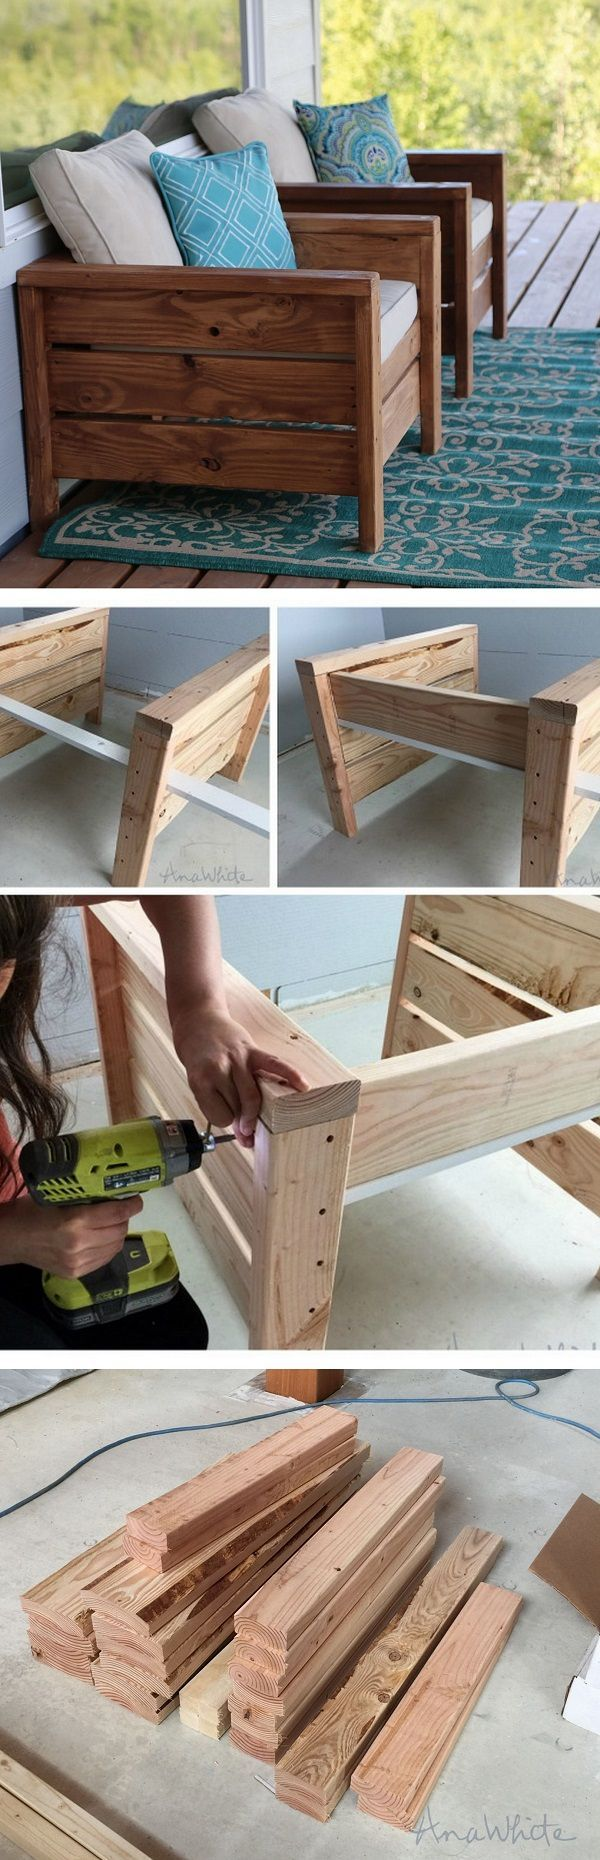 Check out this easy idea on how to make #DIY #wooden modern chairs for #homedecor #project @istandarddesign